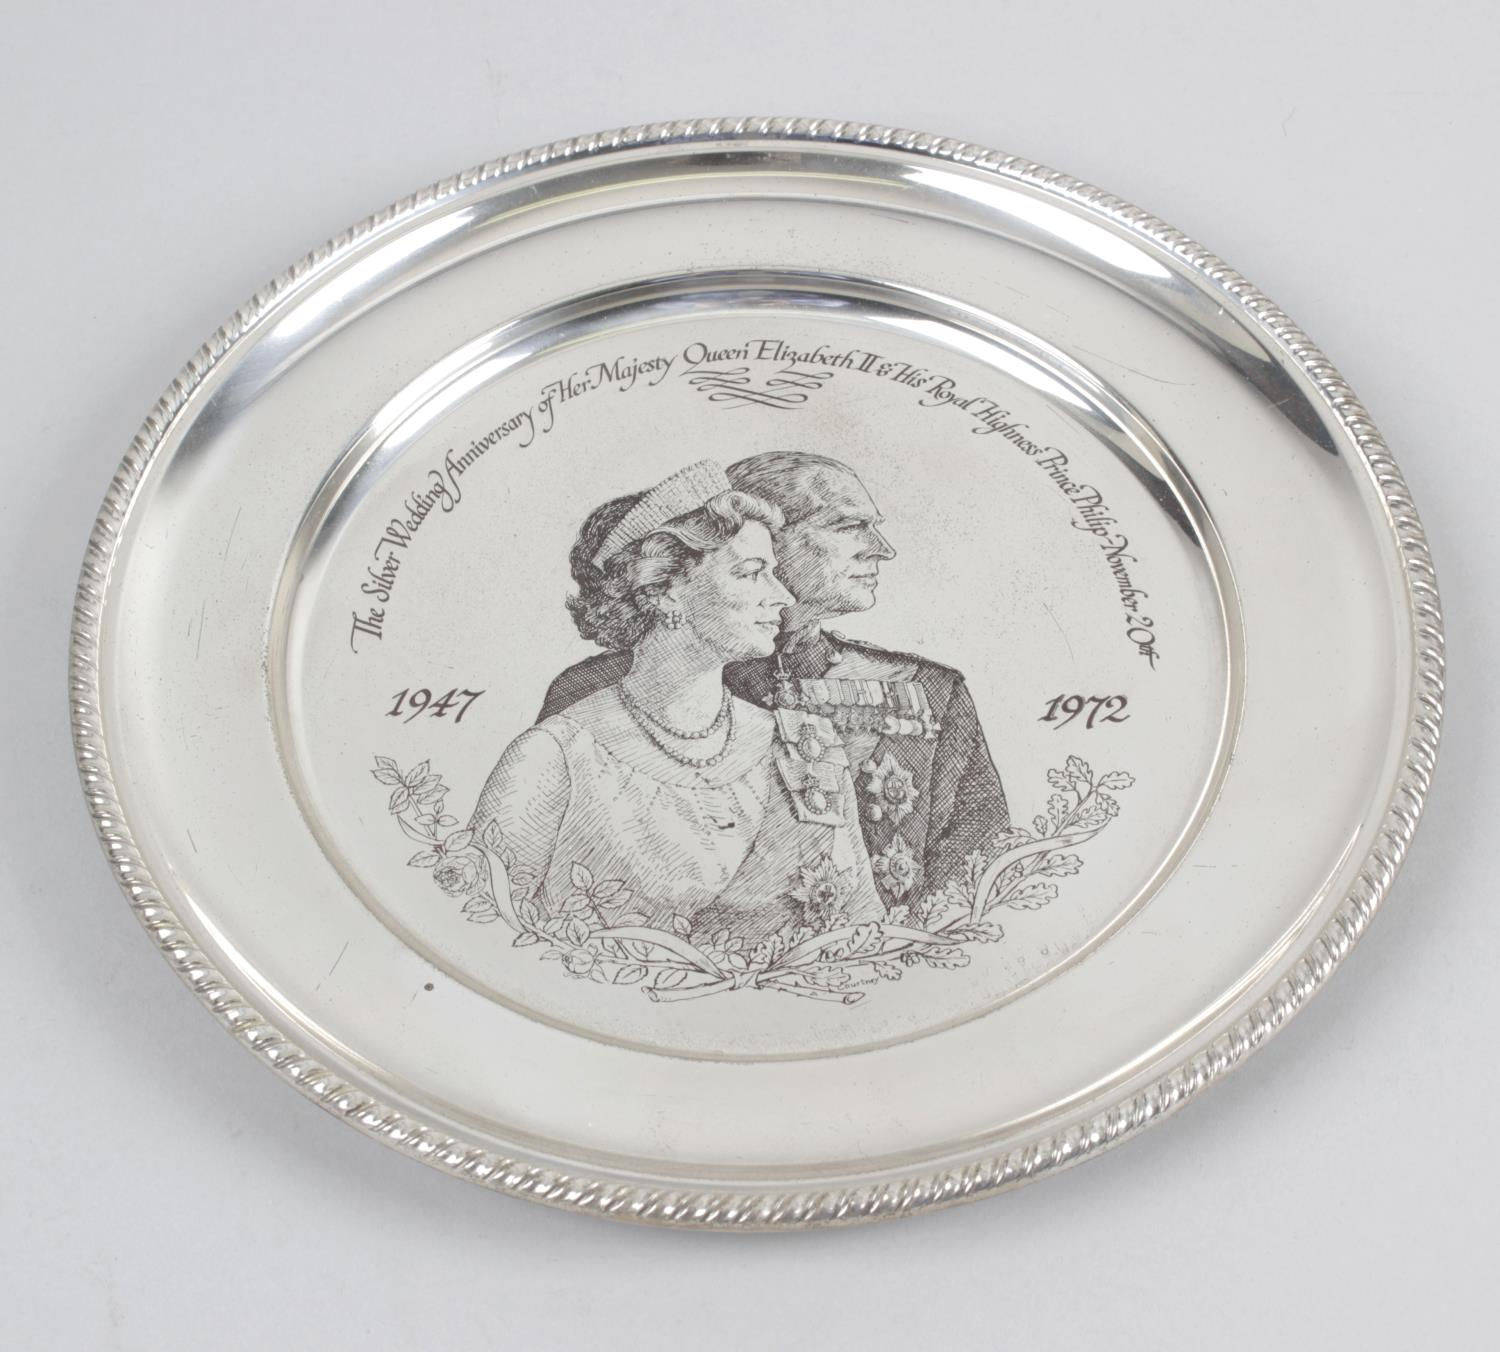 Lot 141 - A modern Royal commemorative silver plate,